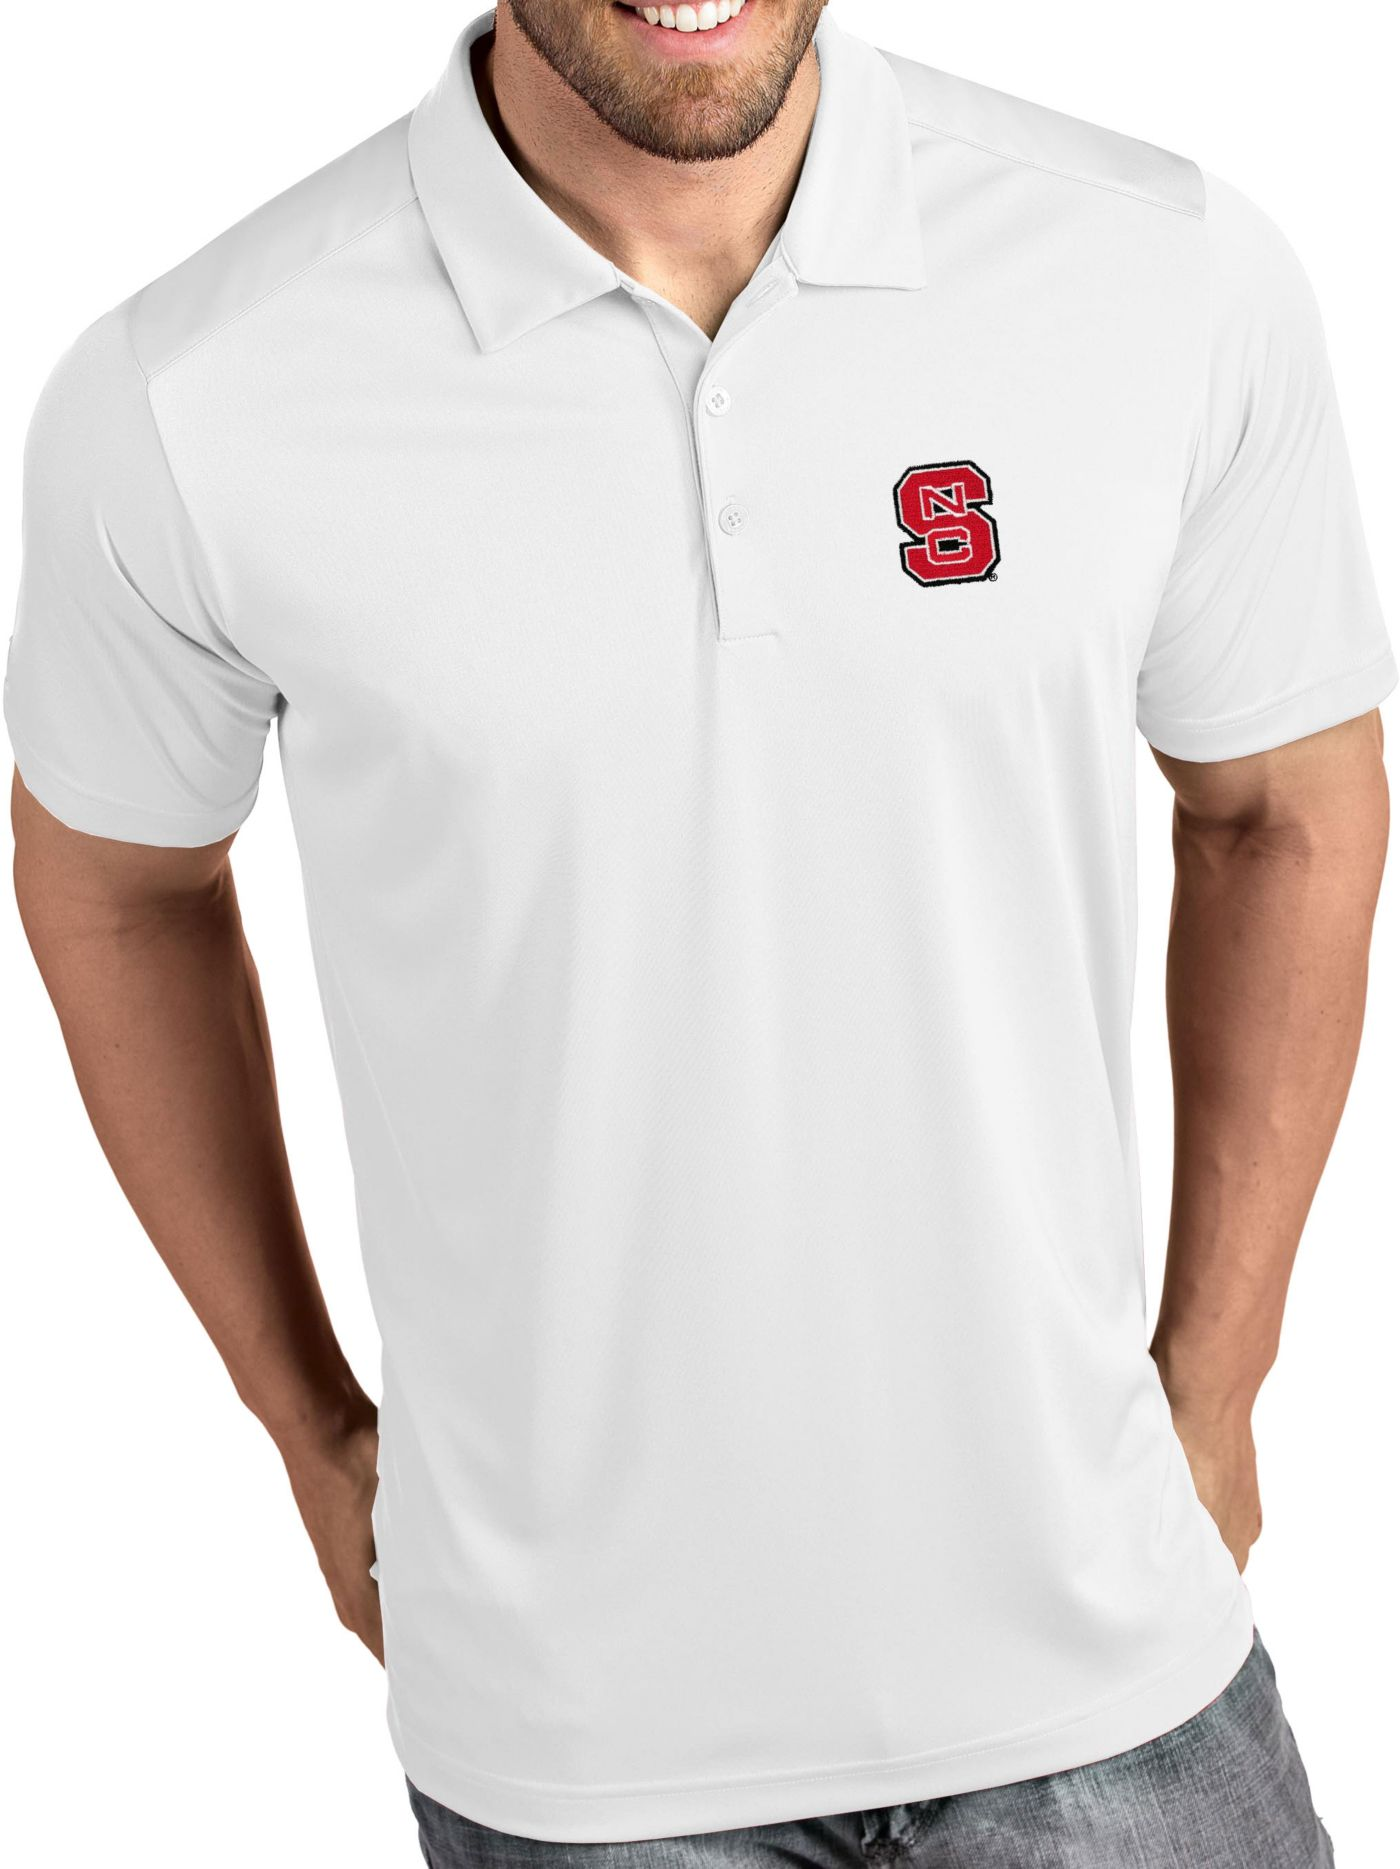 Antigua Men's NC State Wolfpack Tribute Performance White Polo